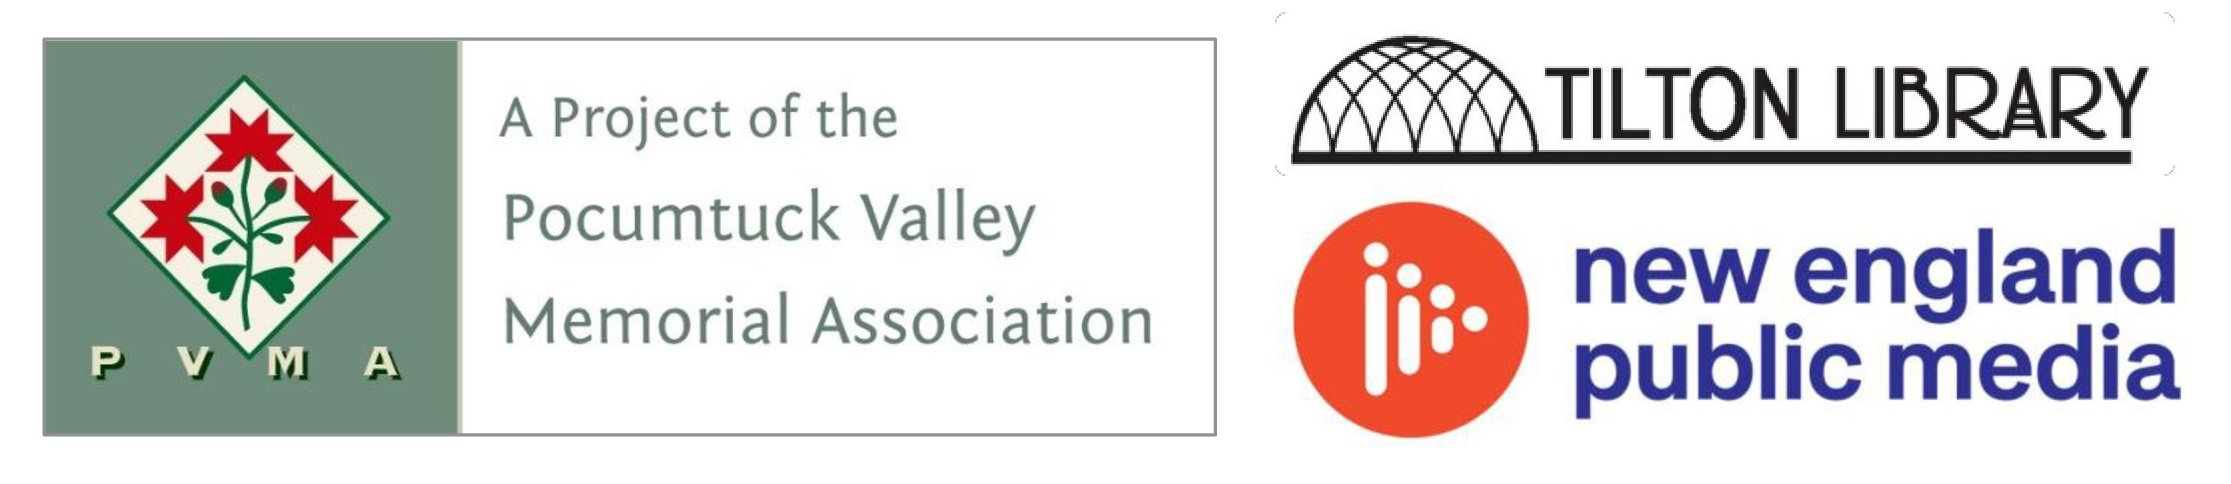 Three logos, Big Read sponsors. PVMA (A Project of the Pocumtuck Valley Memorial Association), Tilton Library, and New England Public Media